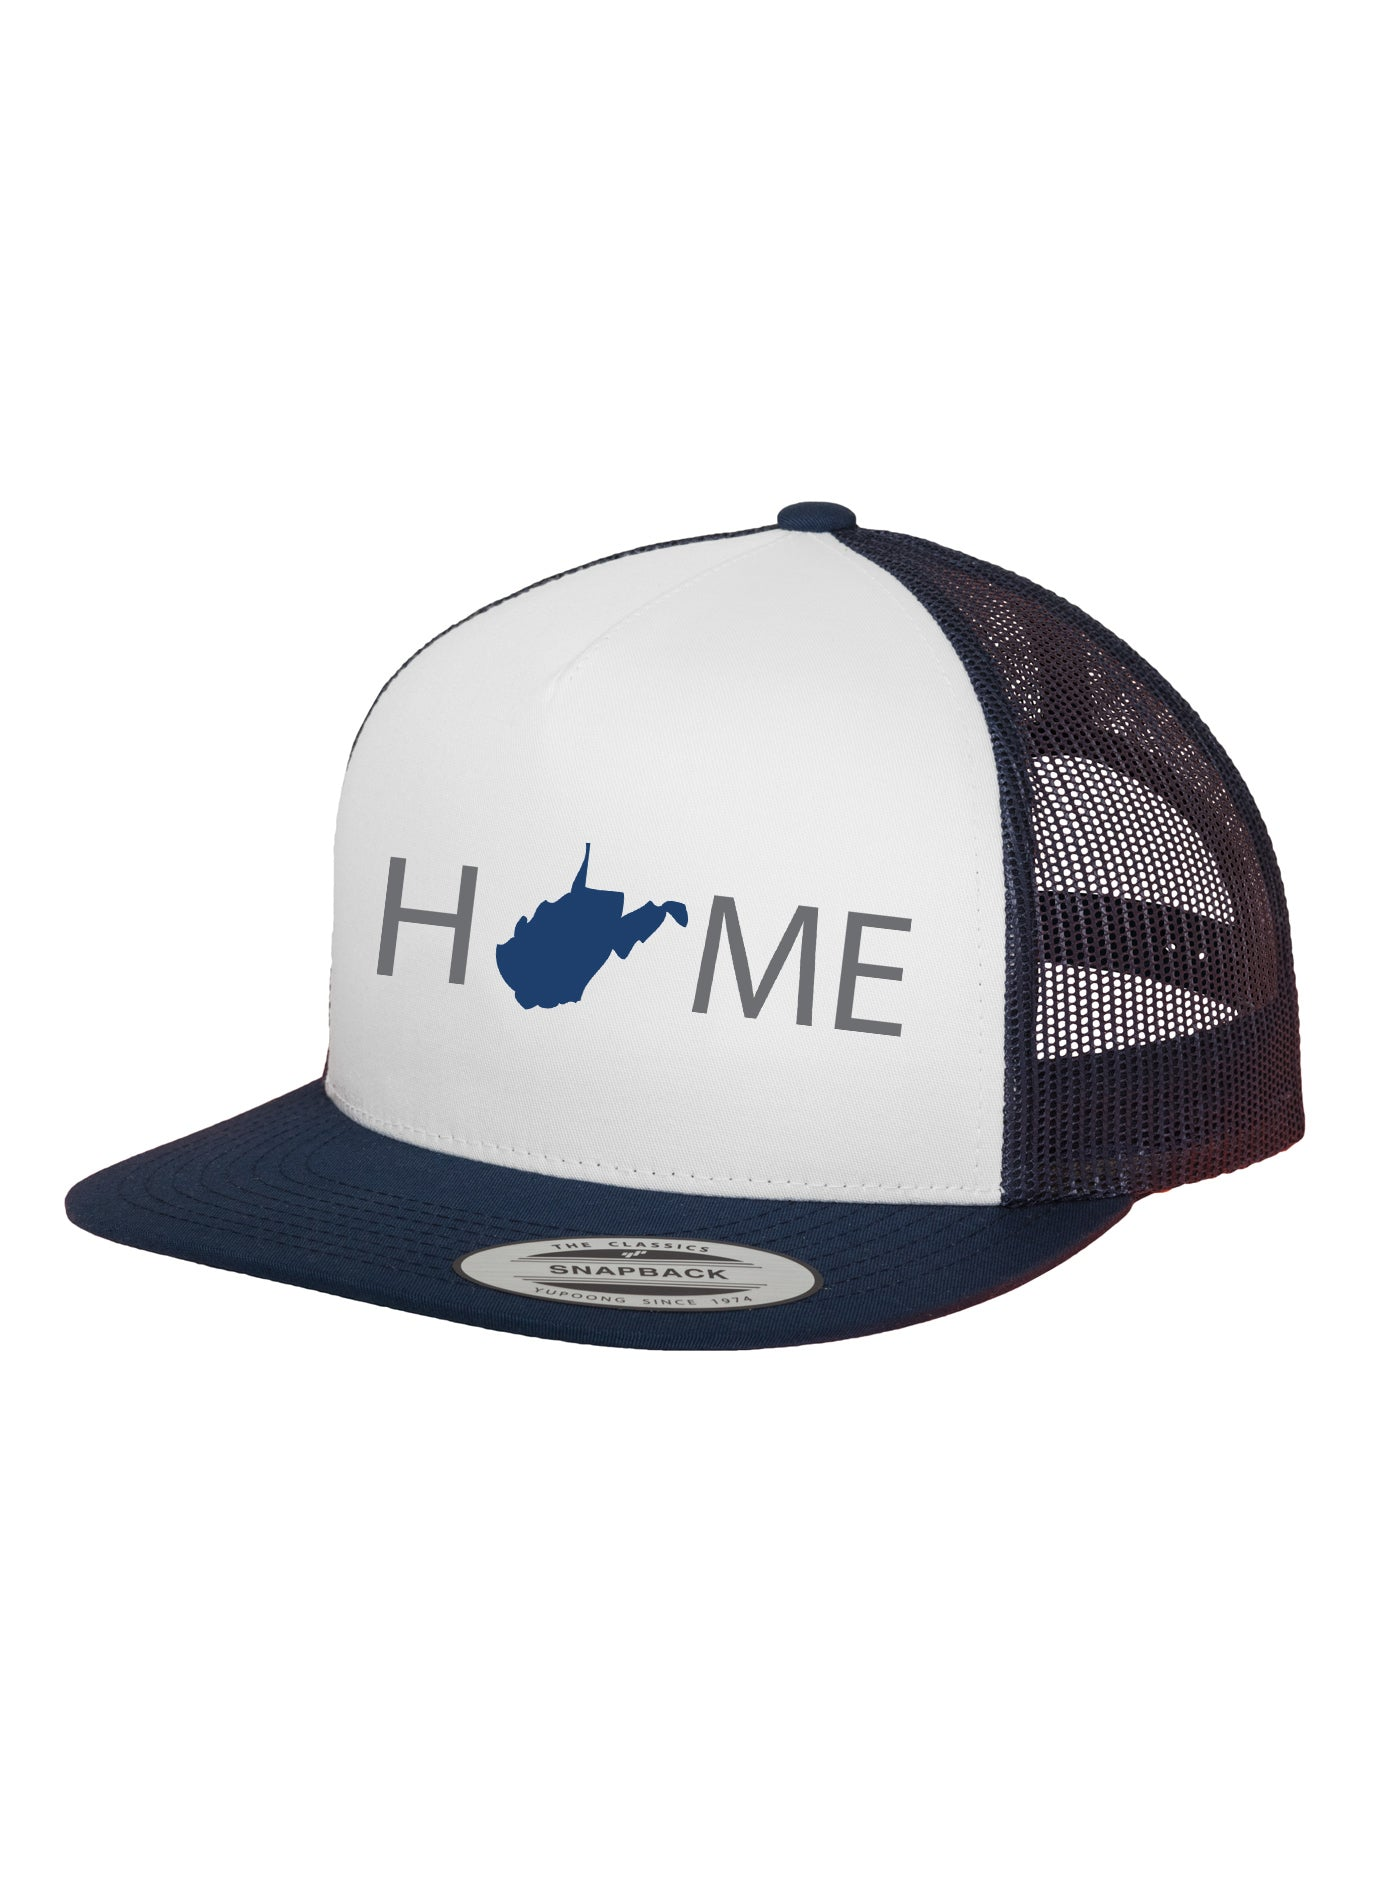 Awesome West Virginia Home Hat C Interior Design Ideas Philsoteloinfo